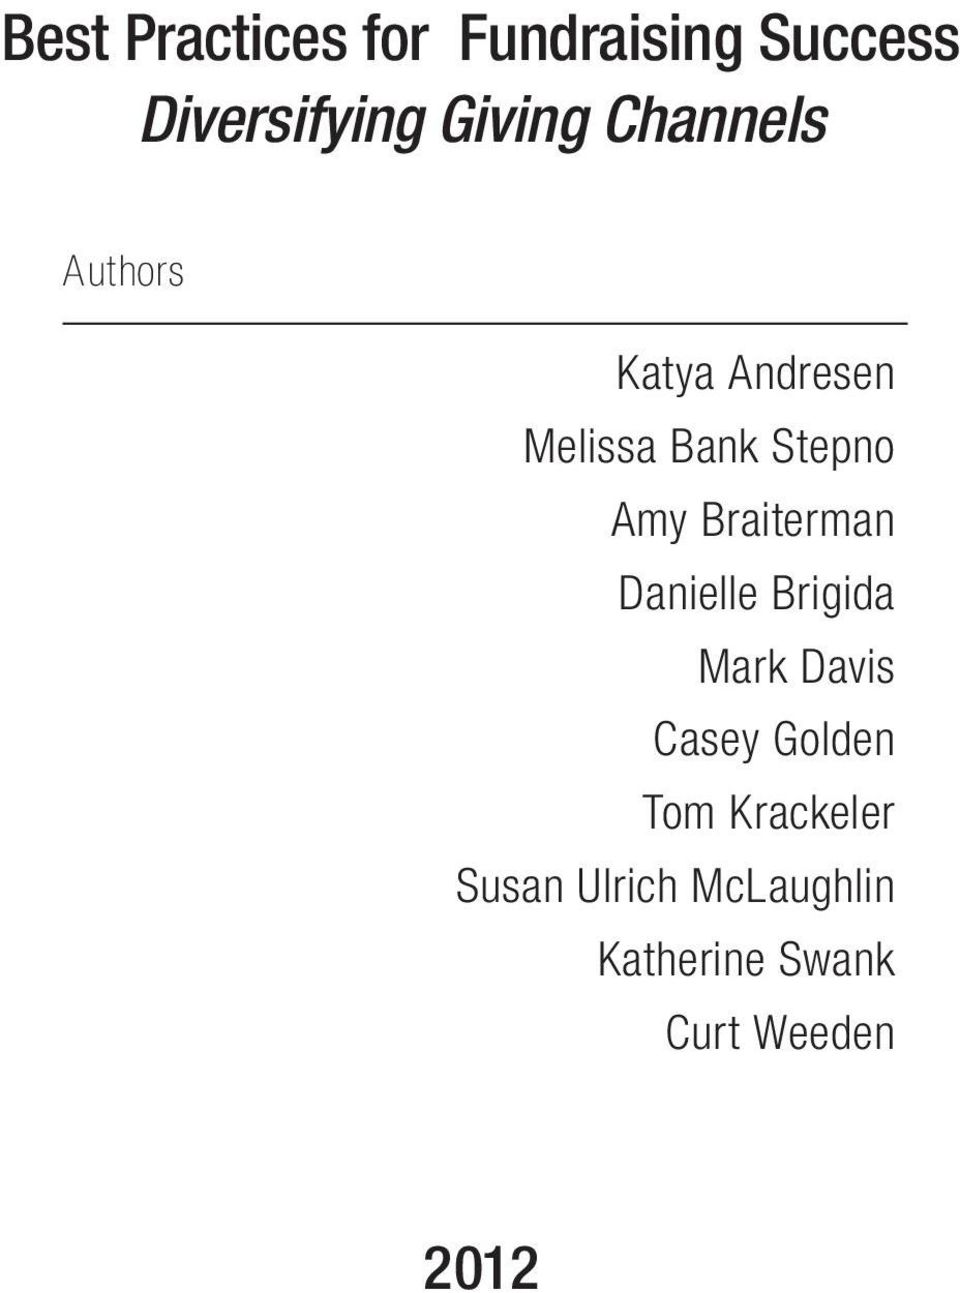 Braiterman Danielle Brigida Mark Davis Casey Golden Tom